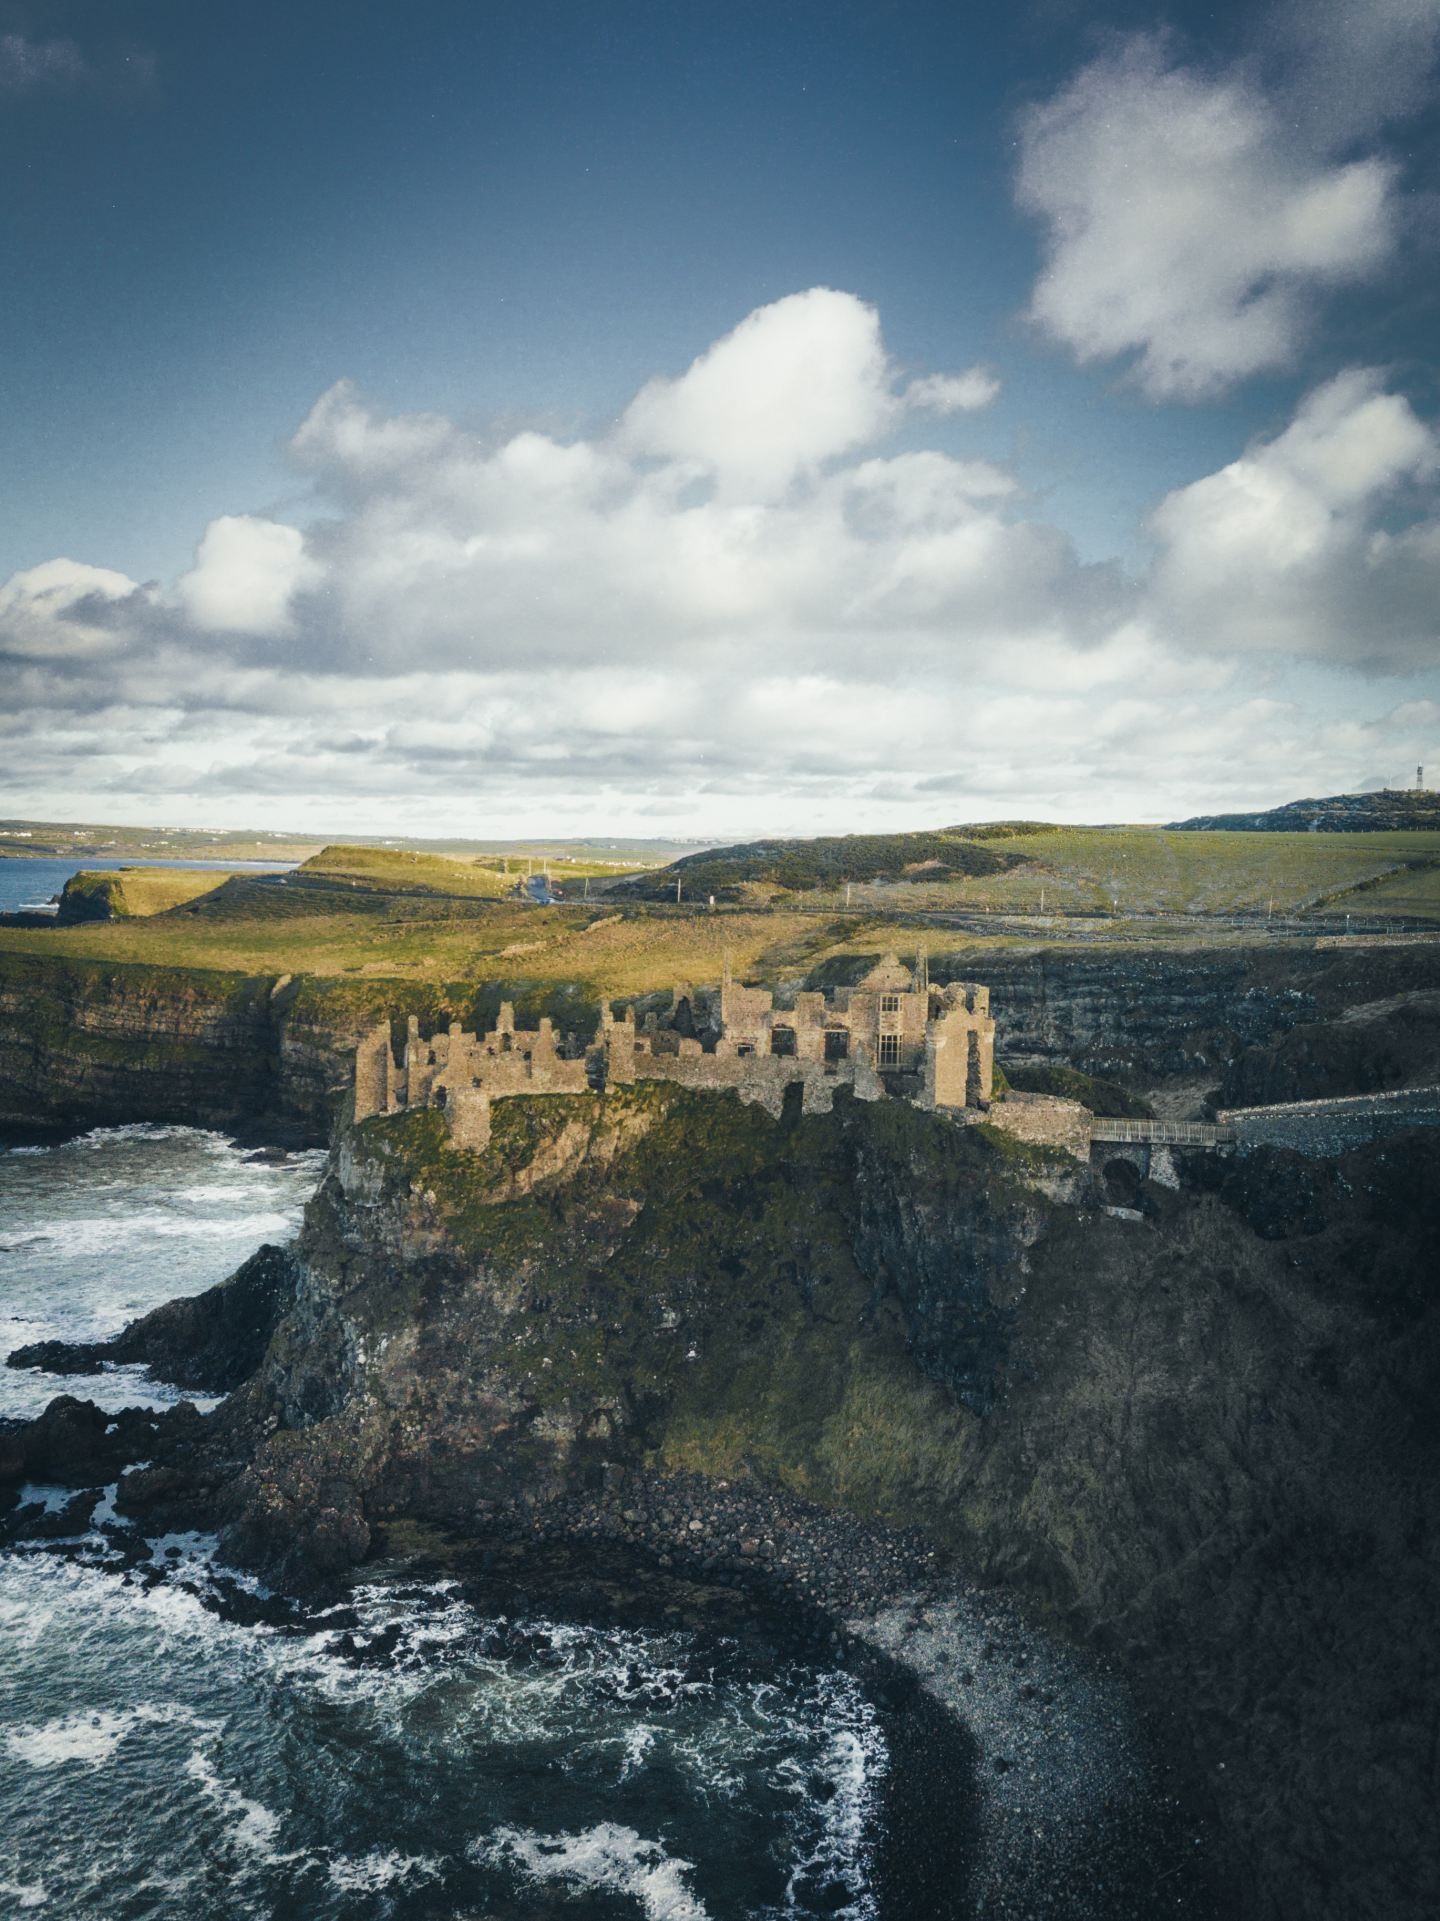 Green Dream: Reasons to Visit Ireland